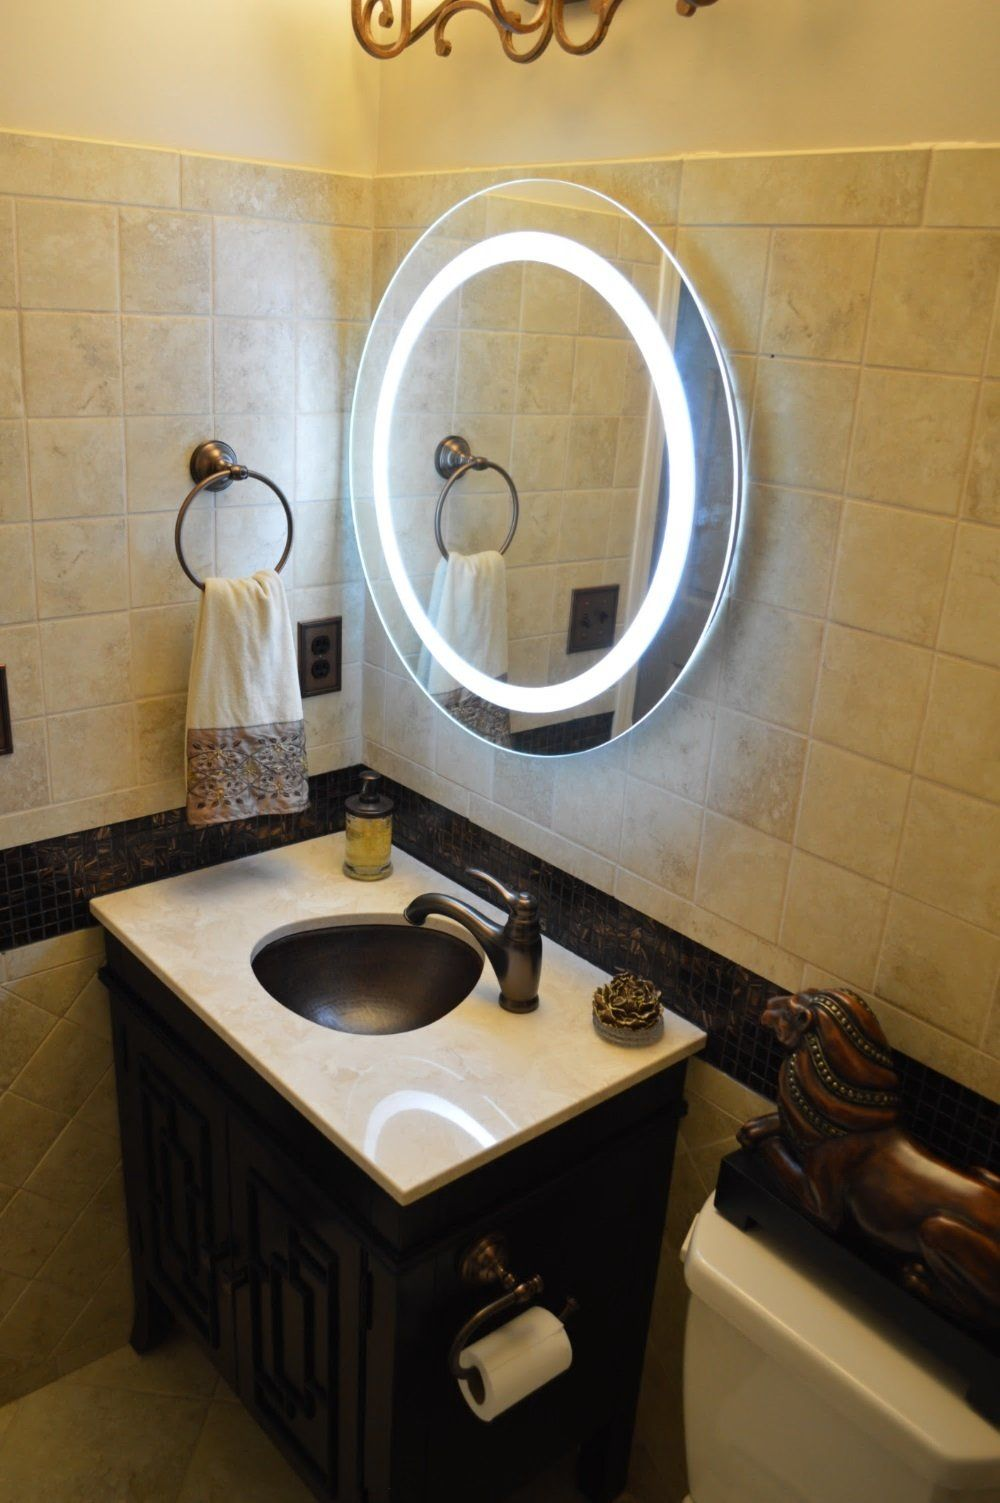 Front Lighted Led Bathroom Vanity Mirror 28 Wide X 36 Tall Rectangular Wall Mounted Lighted Vanity Mirror Mirror Vanity